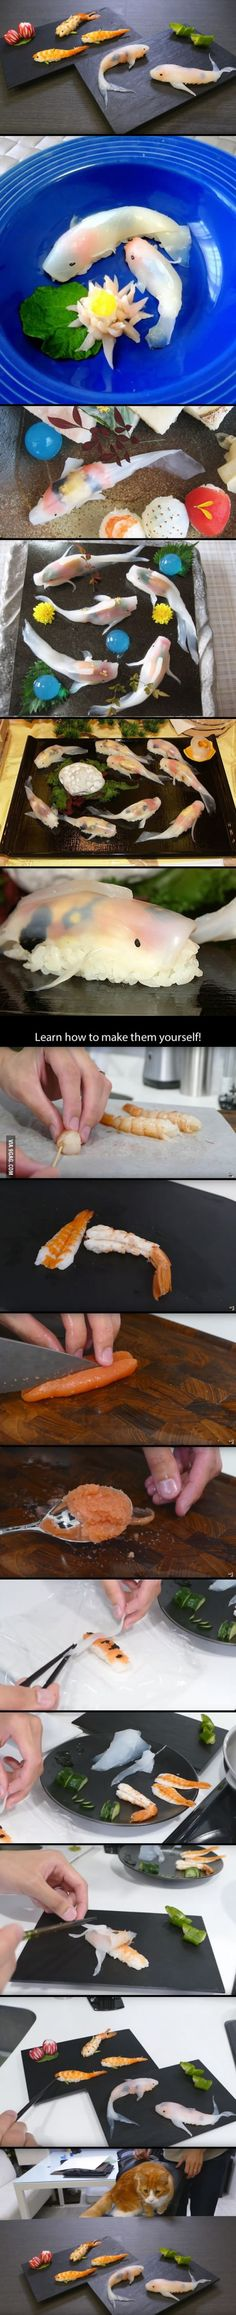 This Guy Makes Sushi That Looks Like Real-Life Koi In A Few Simple Steps tracking.